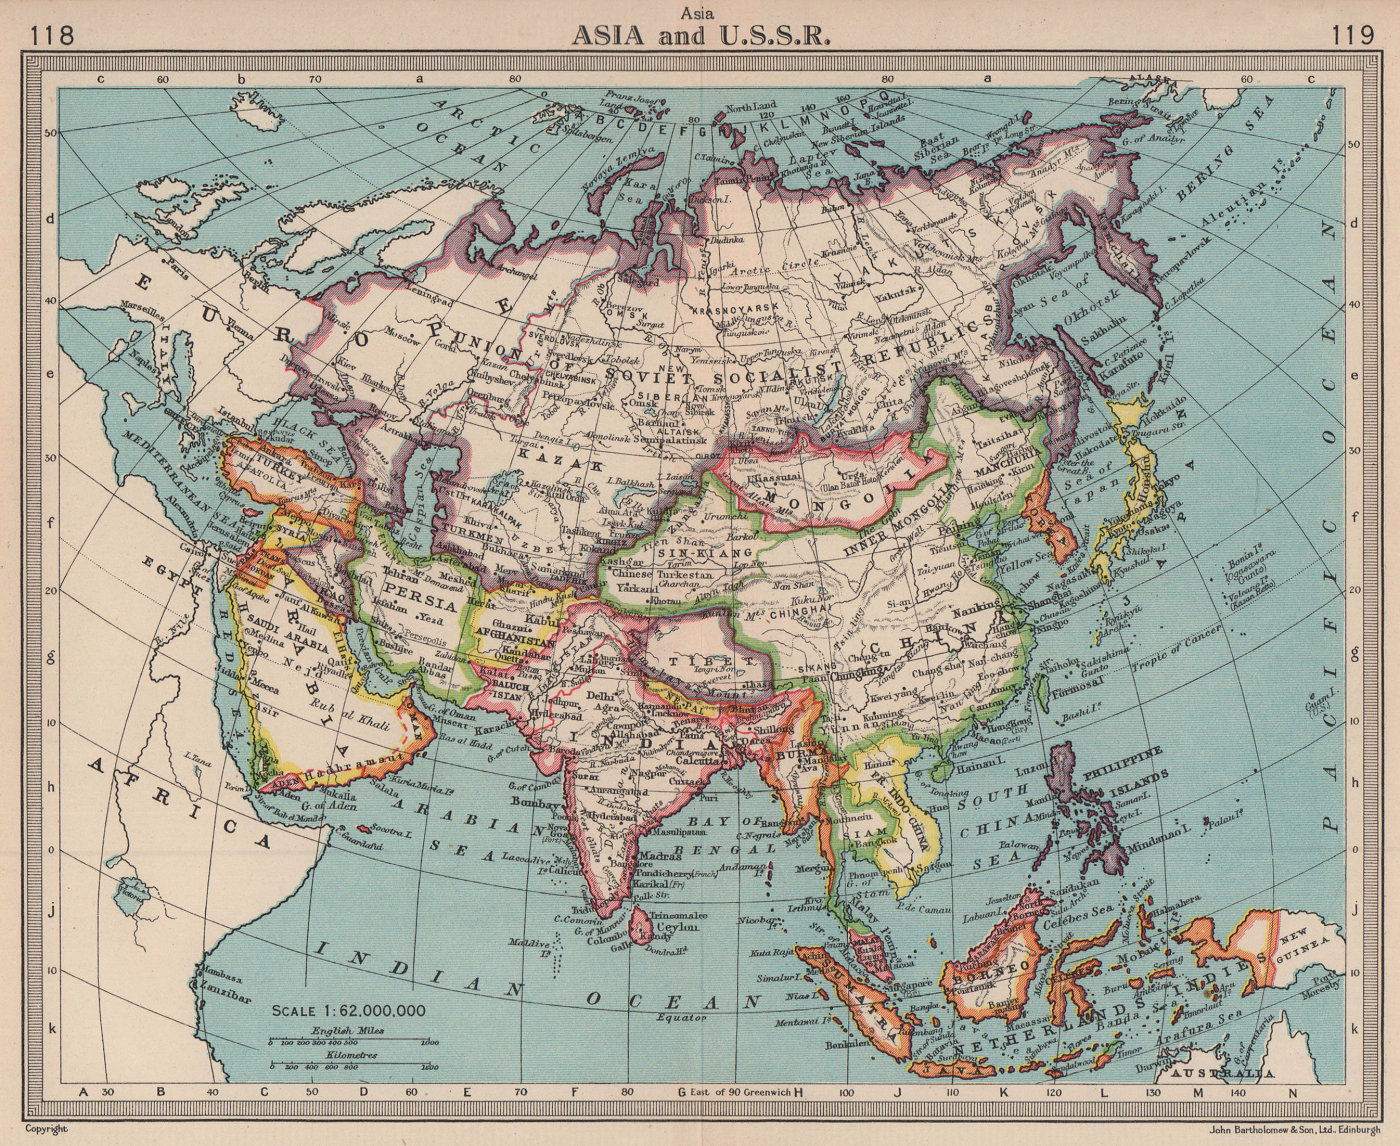 Asia & U.S.S.R. Independent Tibet. Newly partitioned India. BARTHOLOMEW 1949 map